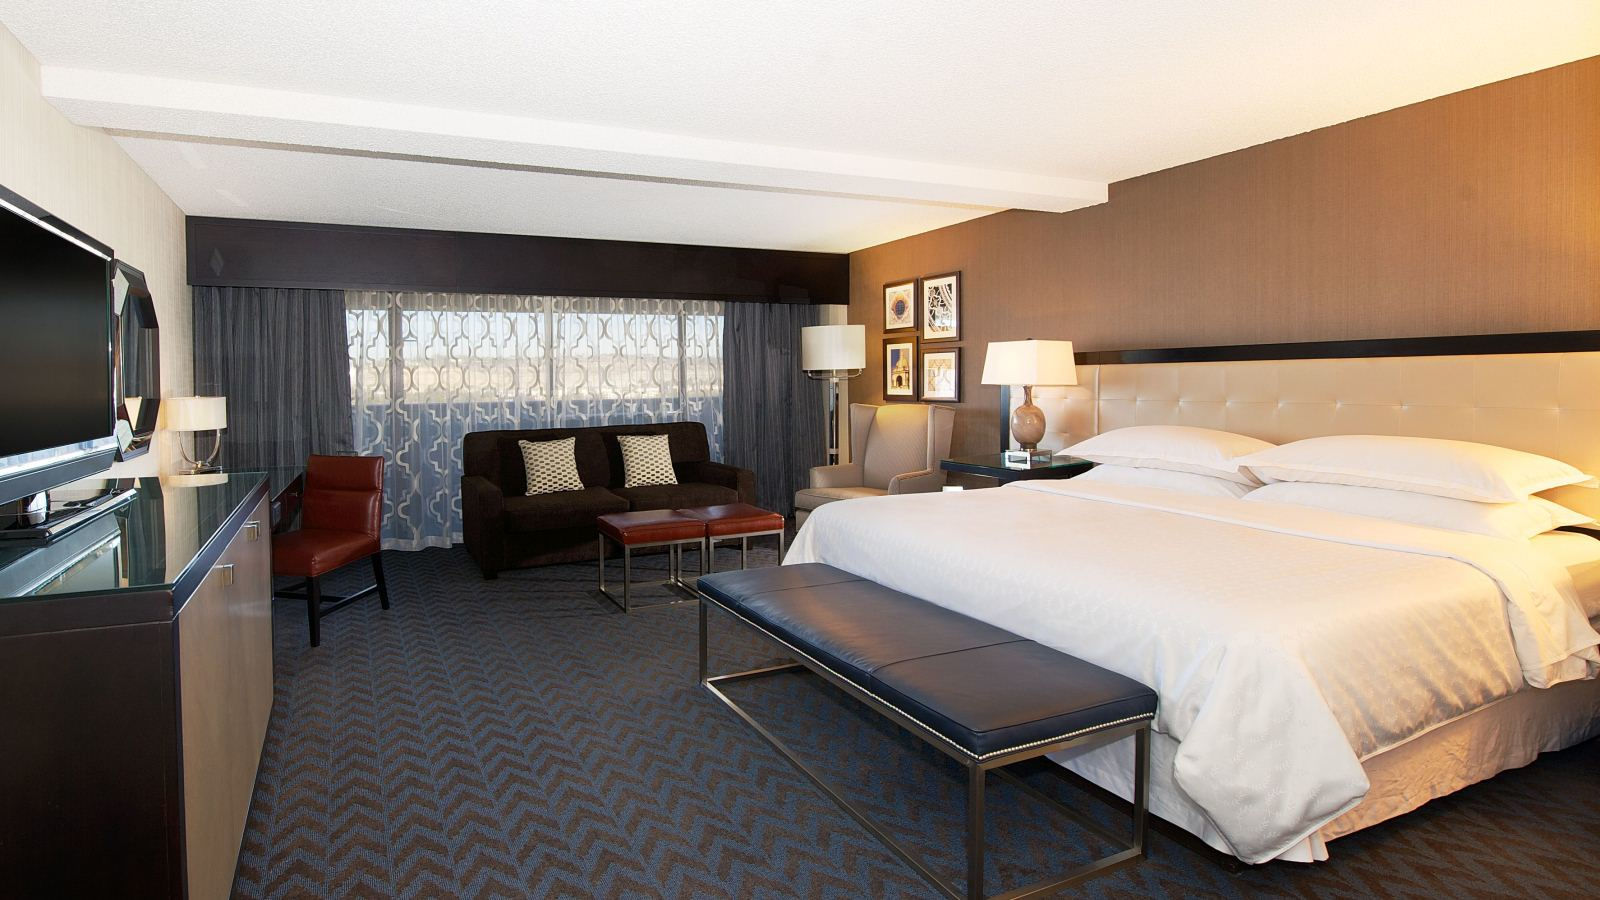 Deluxe Guest Rooms in Mission Valley - King Queen Deluxe Rooms | Sheraton Mission Valley San Diego Hotel